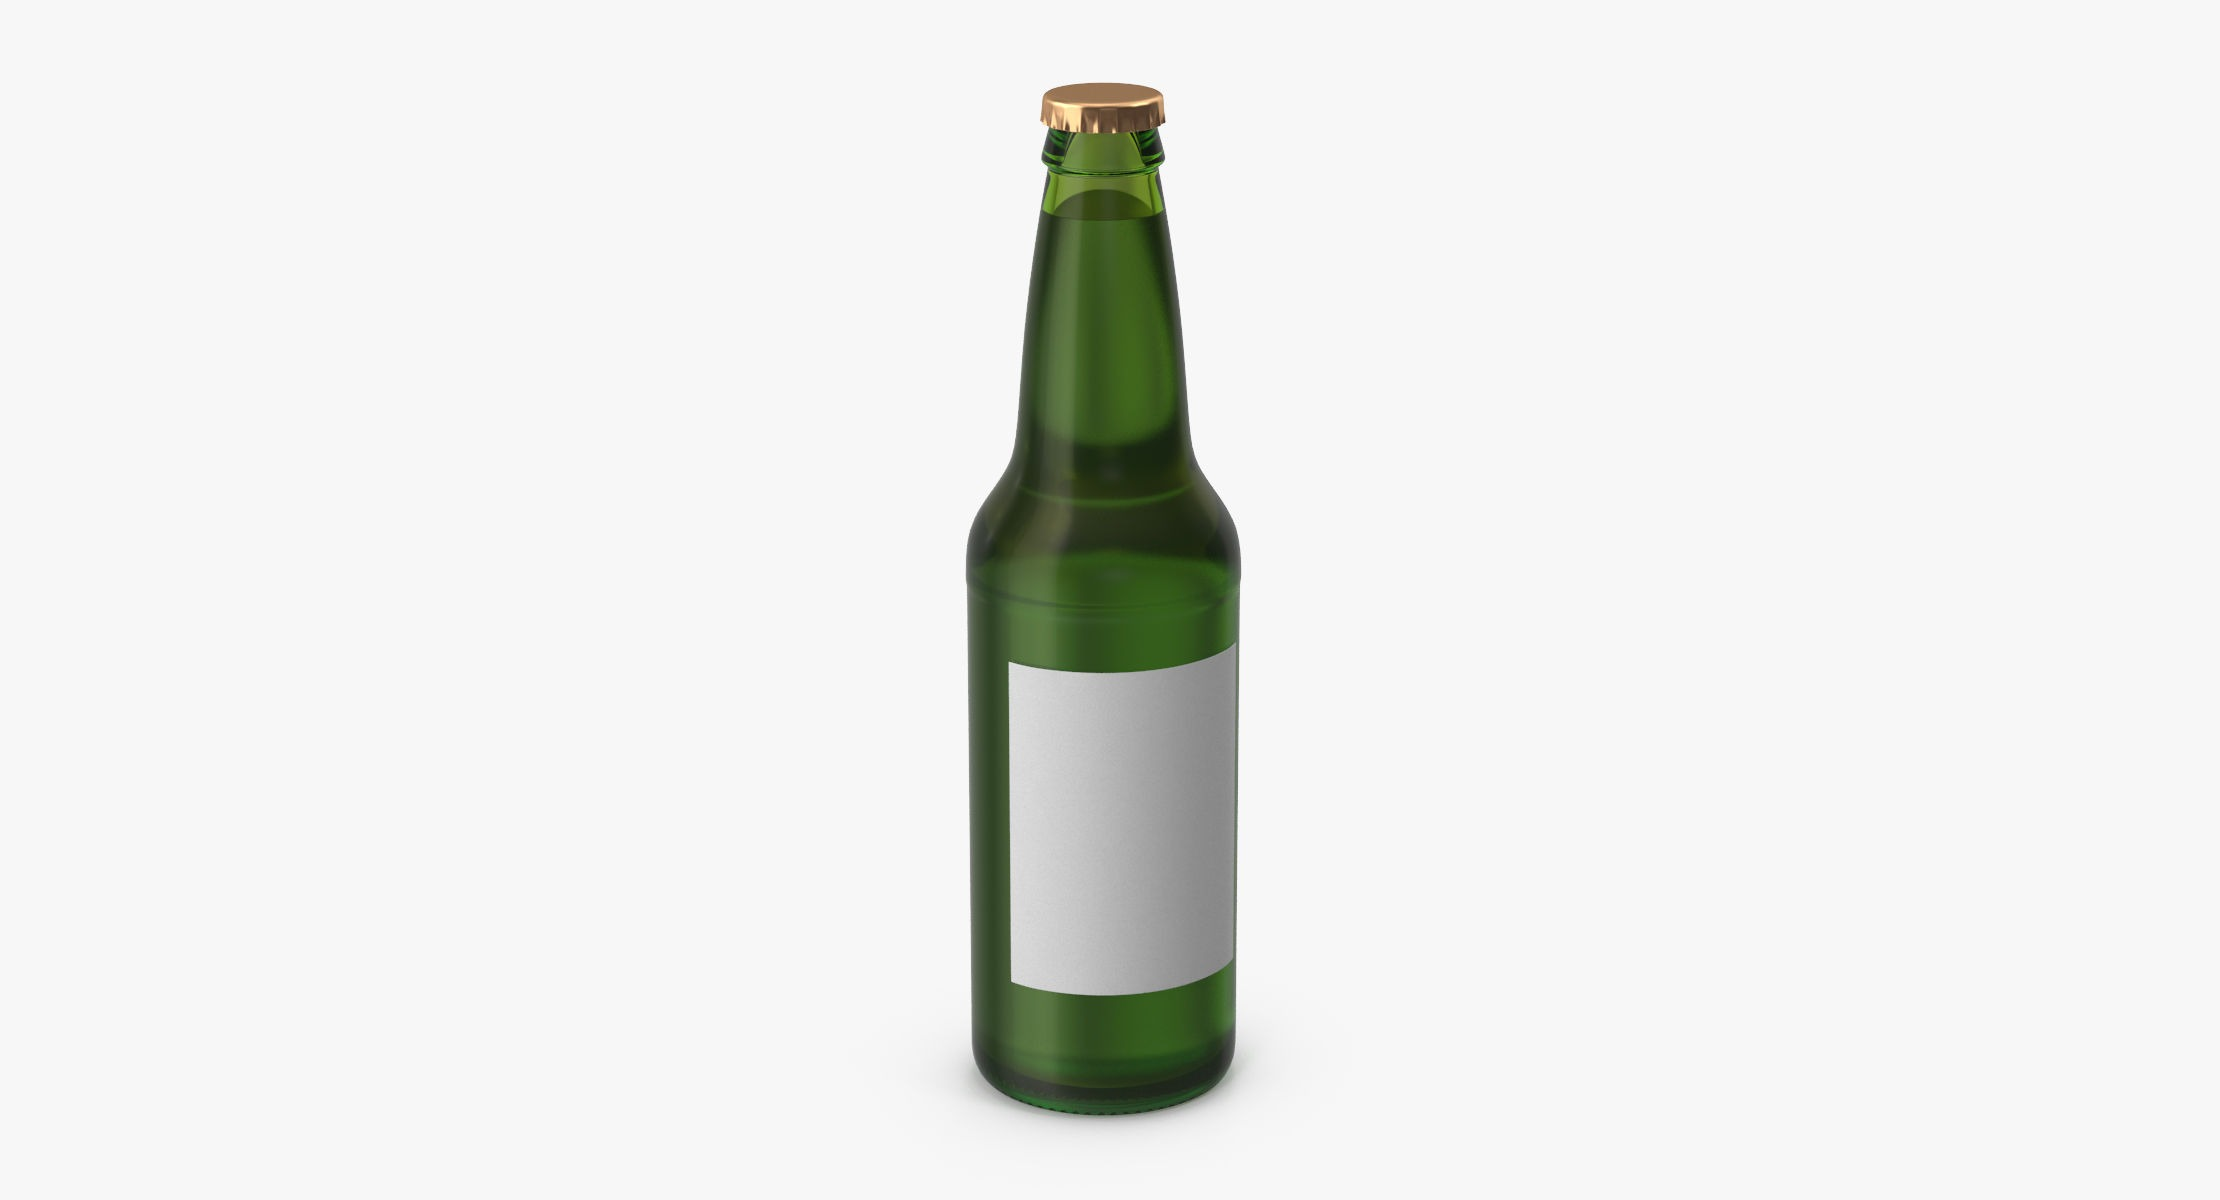 Beer Bottle Green - reel 1